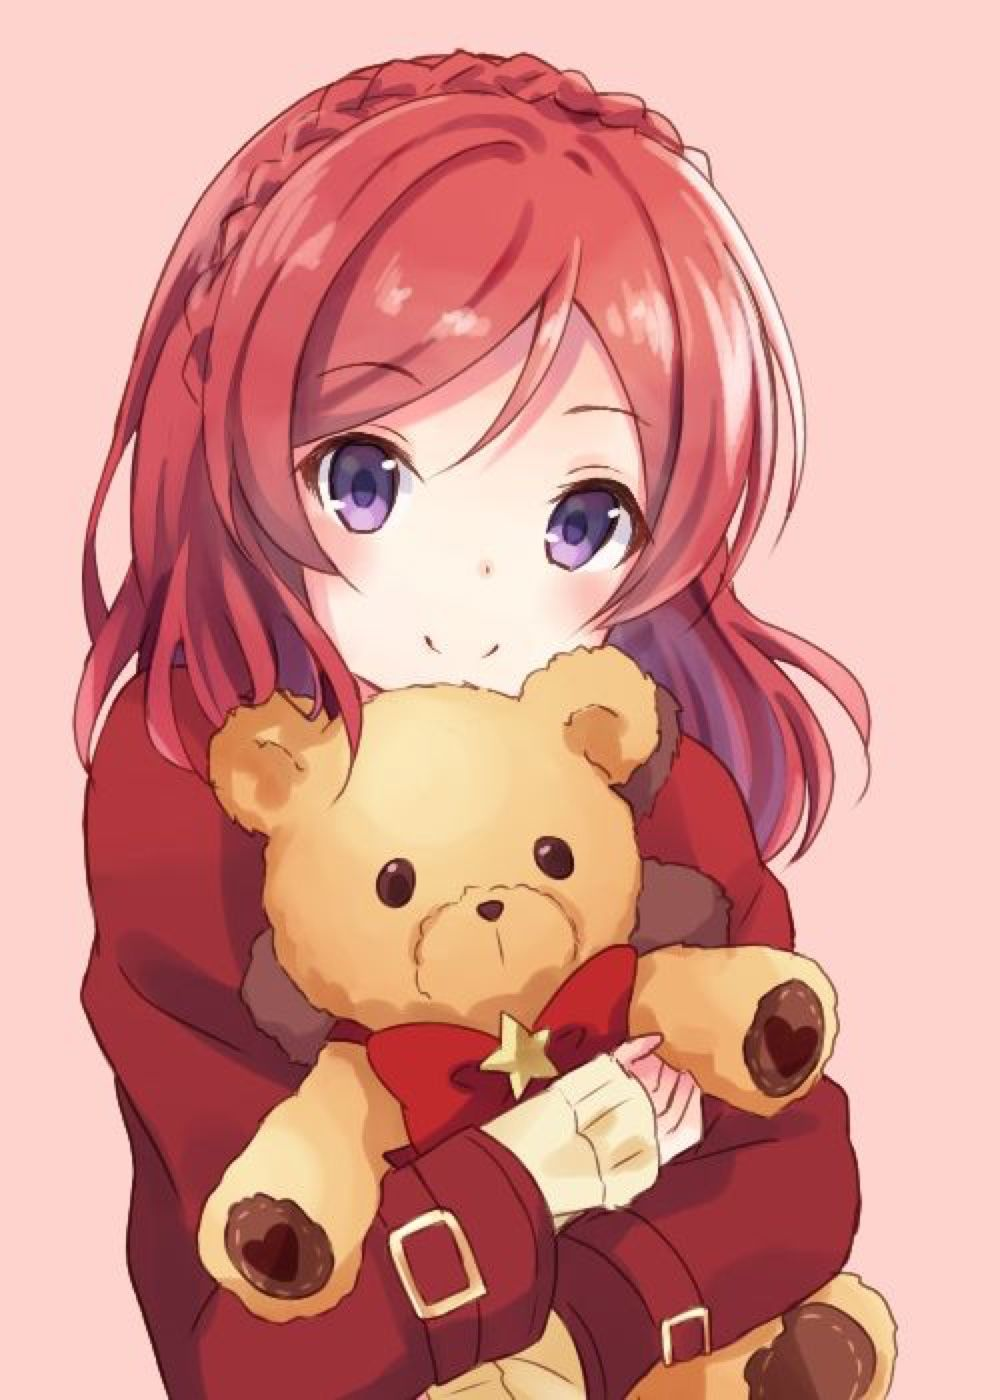 Anime Girl With Red Hair Tumblr Www Imgkid Com The